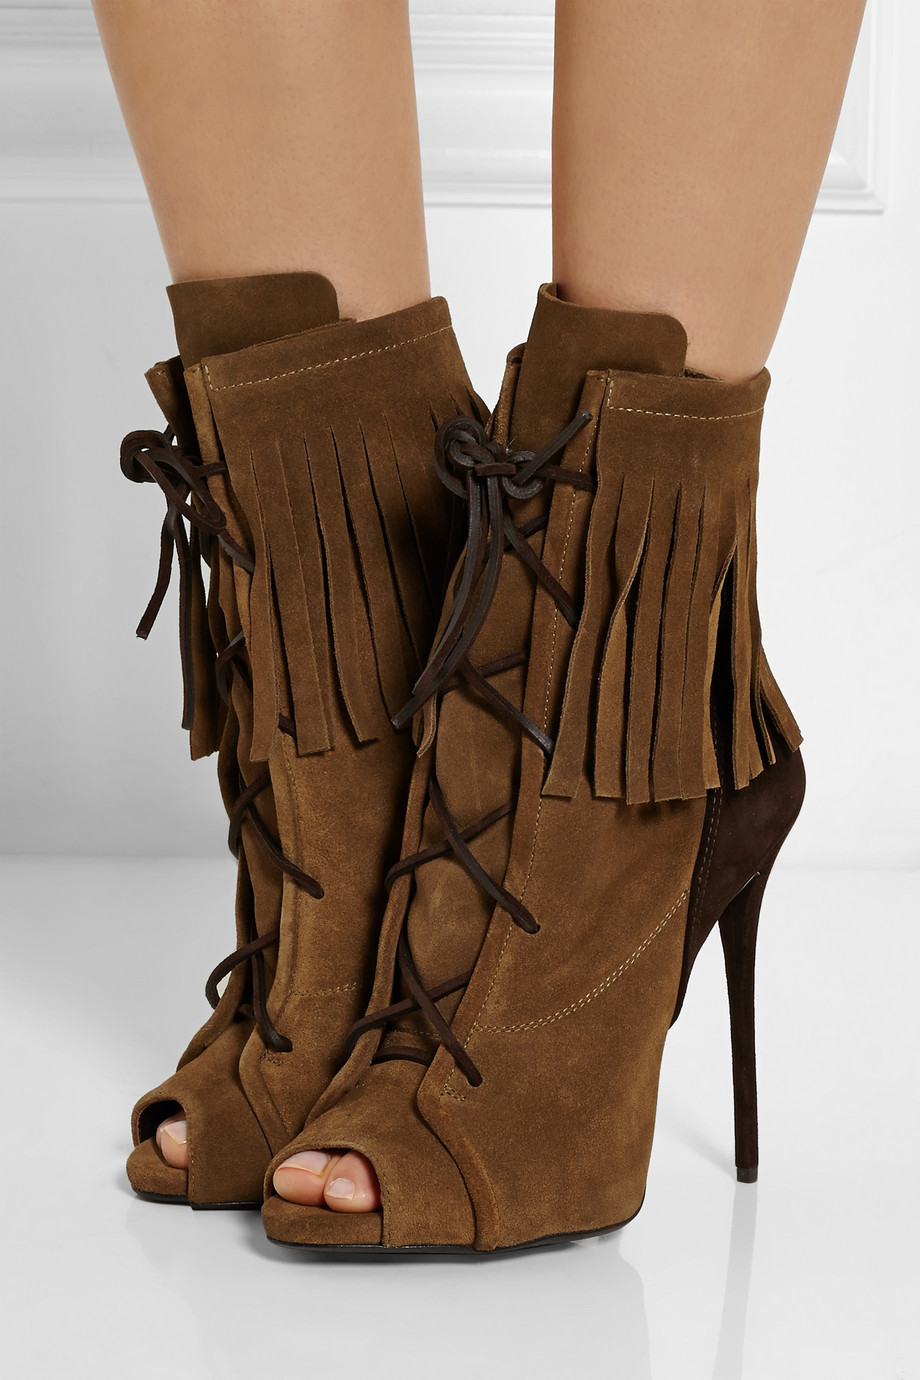 New Fringe Women Boots With Thin Heels Peep Toe Shoes For Woman Lace up High Heel Size 34-42 Spring Ankle Boots SexyNew Fringe Women Boots With Thin Heels Peep Toe Shoes For Woman Lace up High Heel Size 34-42 Spring Ankle Boots Sexy